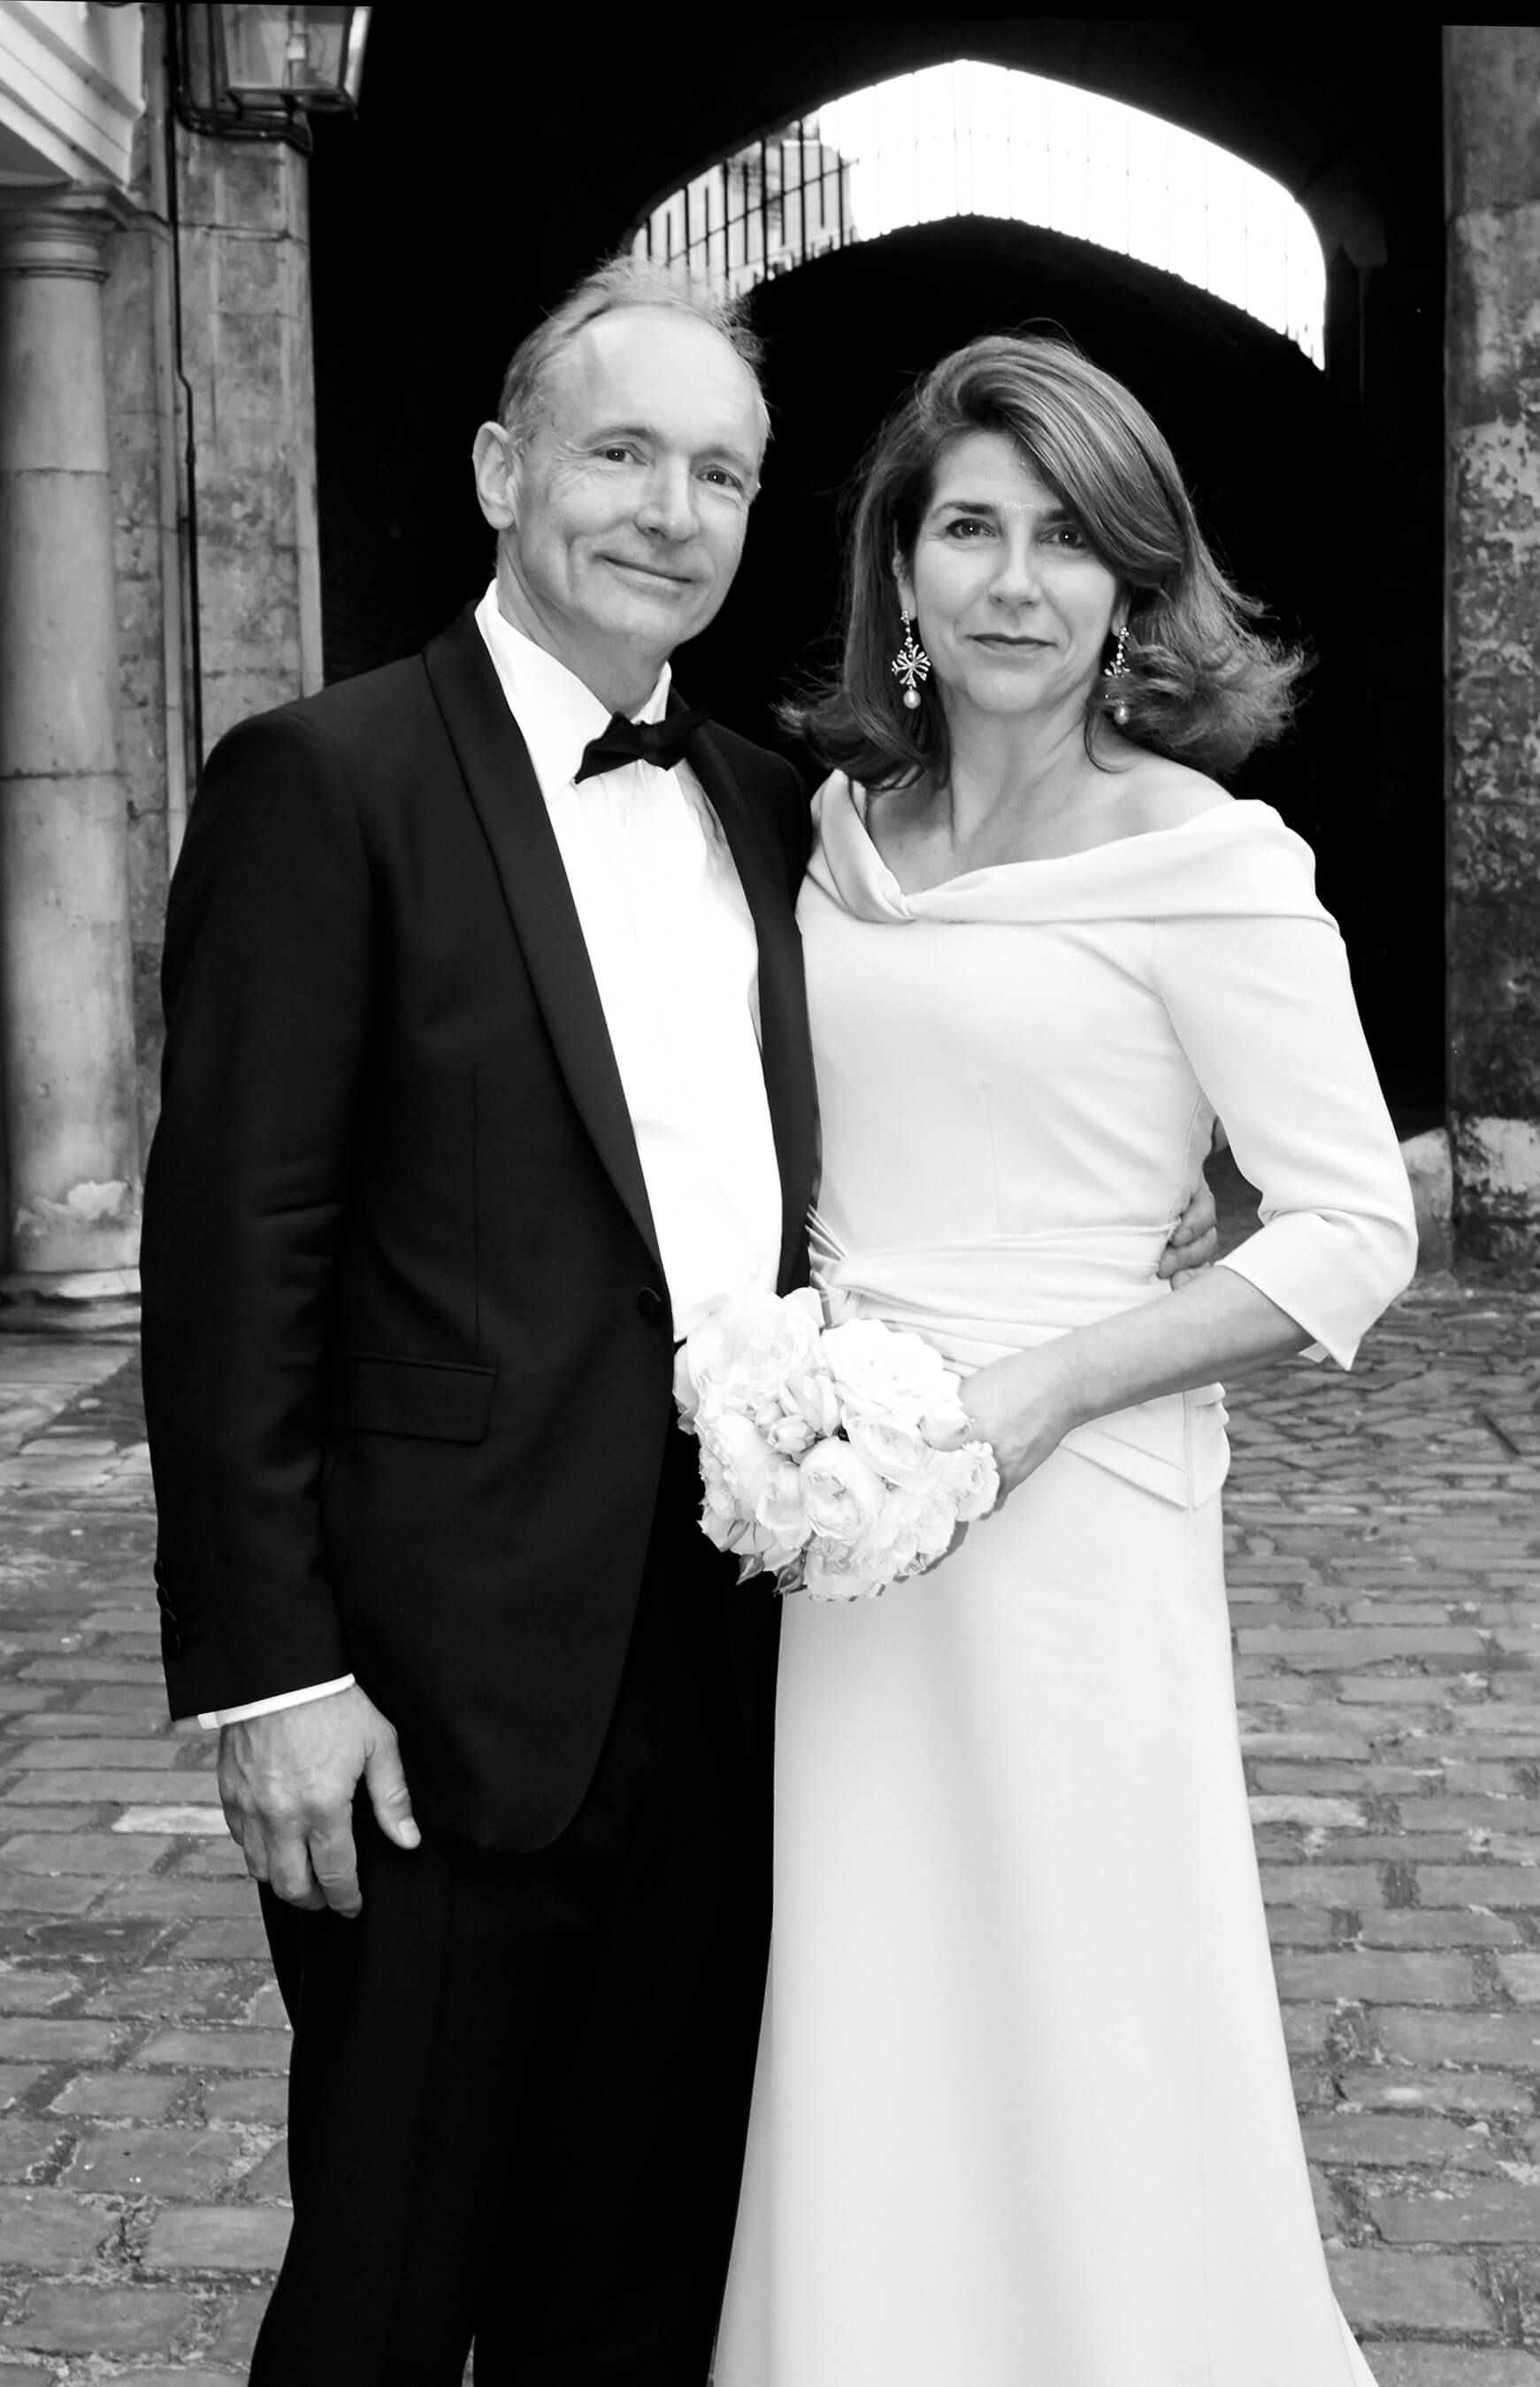 The Marriage Of Sir Tim Berners Lee And Ms Rosemary Leith